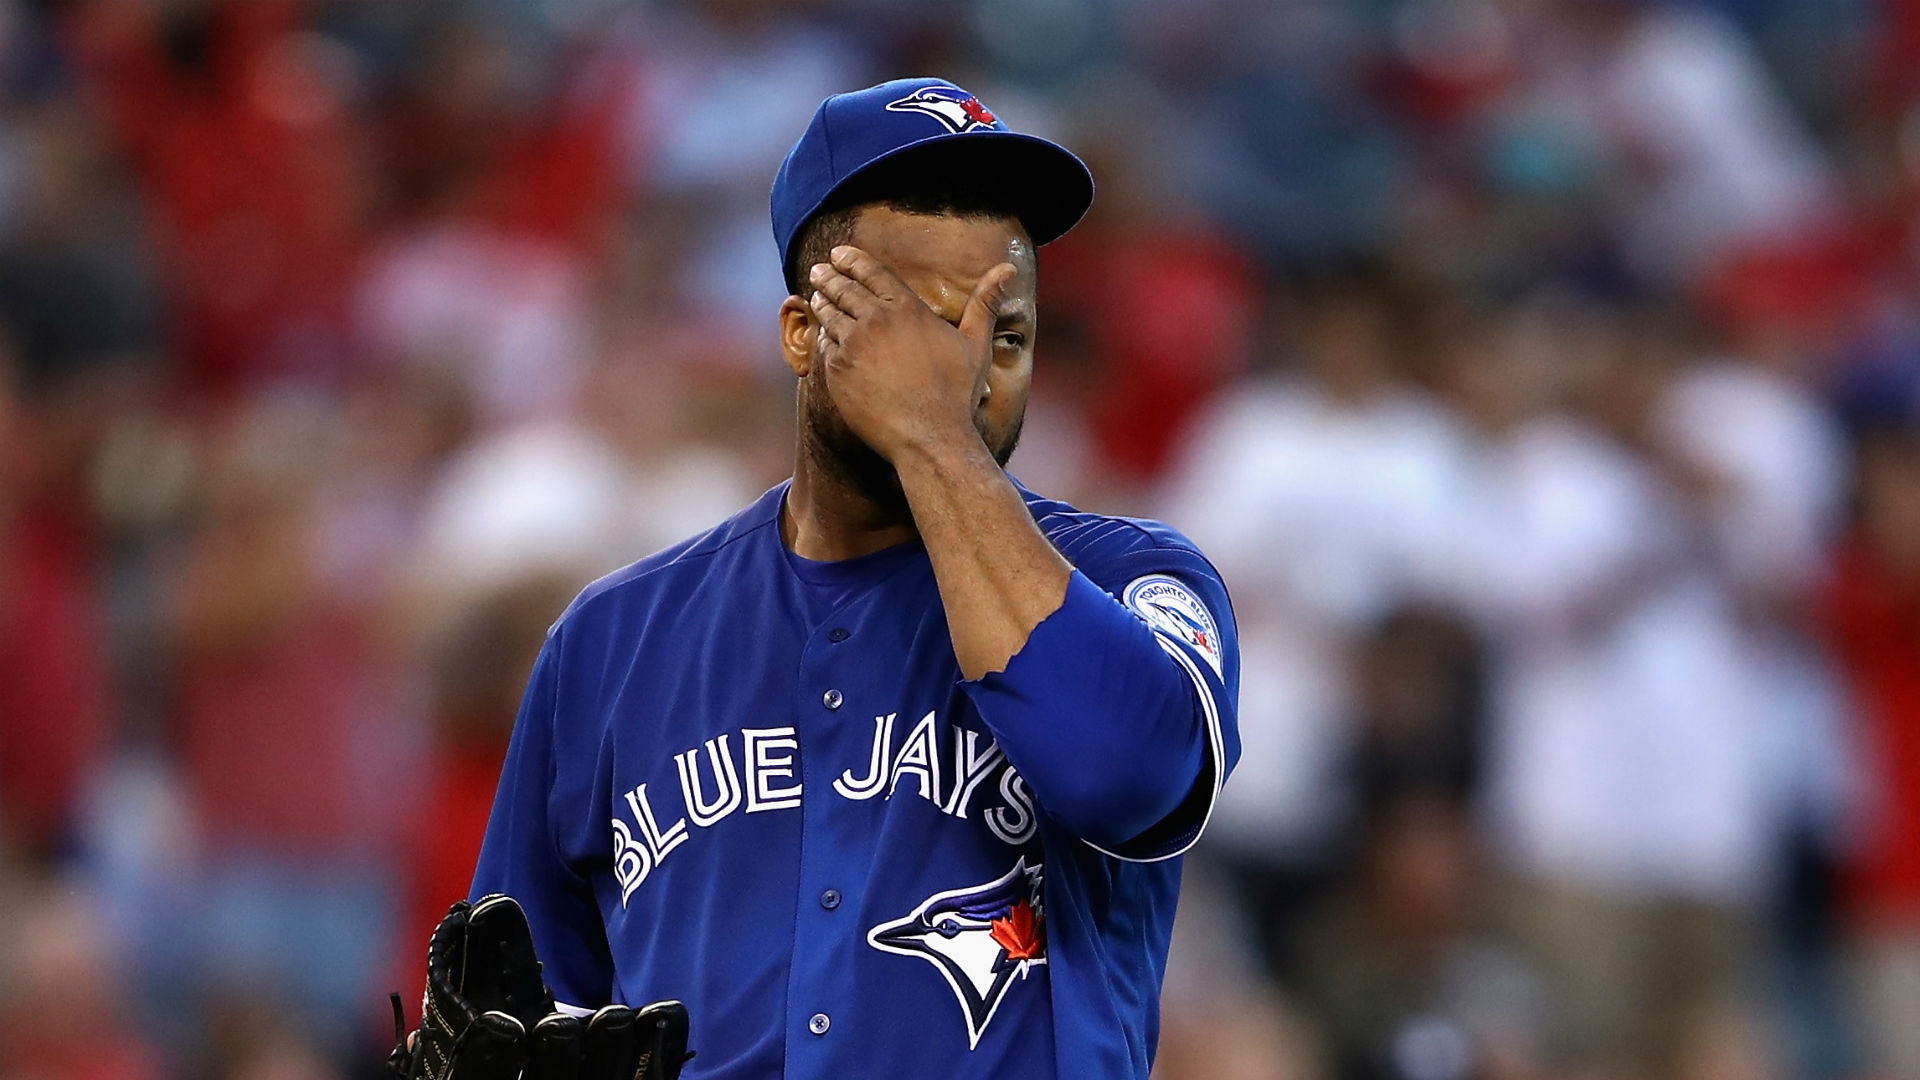 Jays Complete ALDS Sweep of Rangers